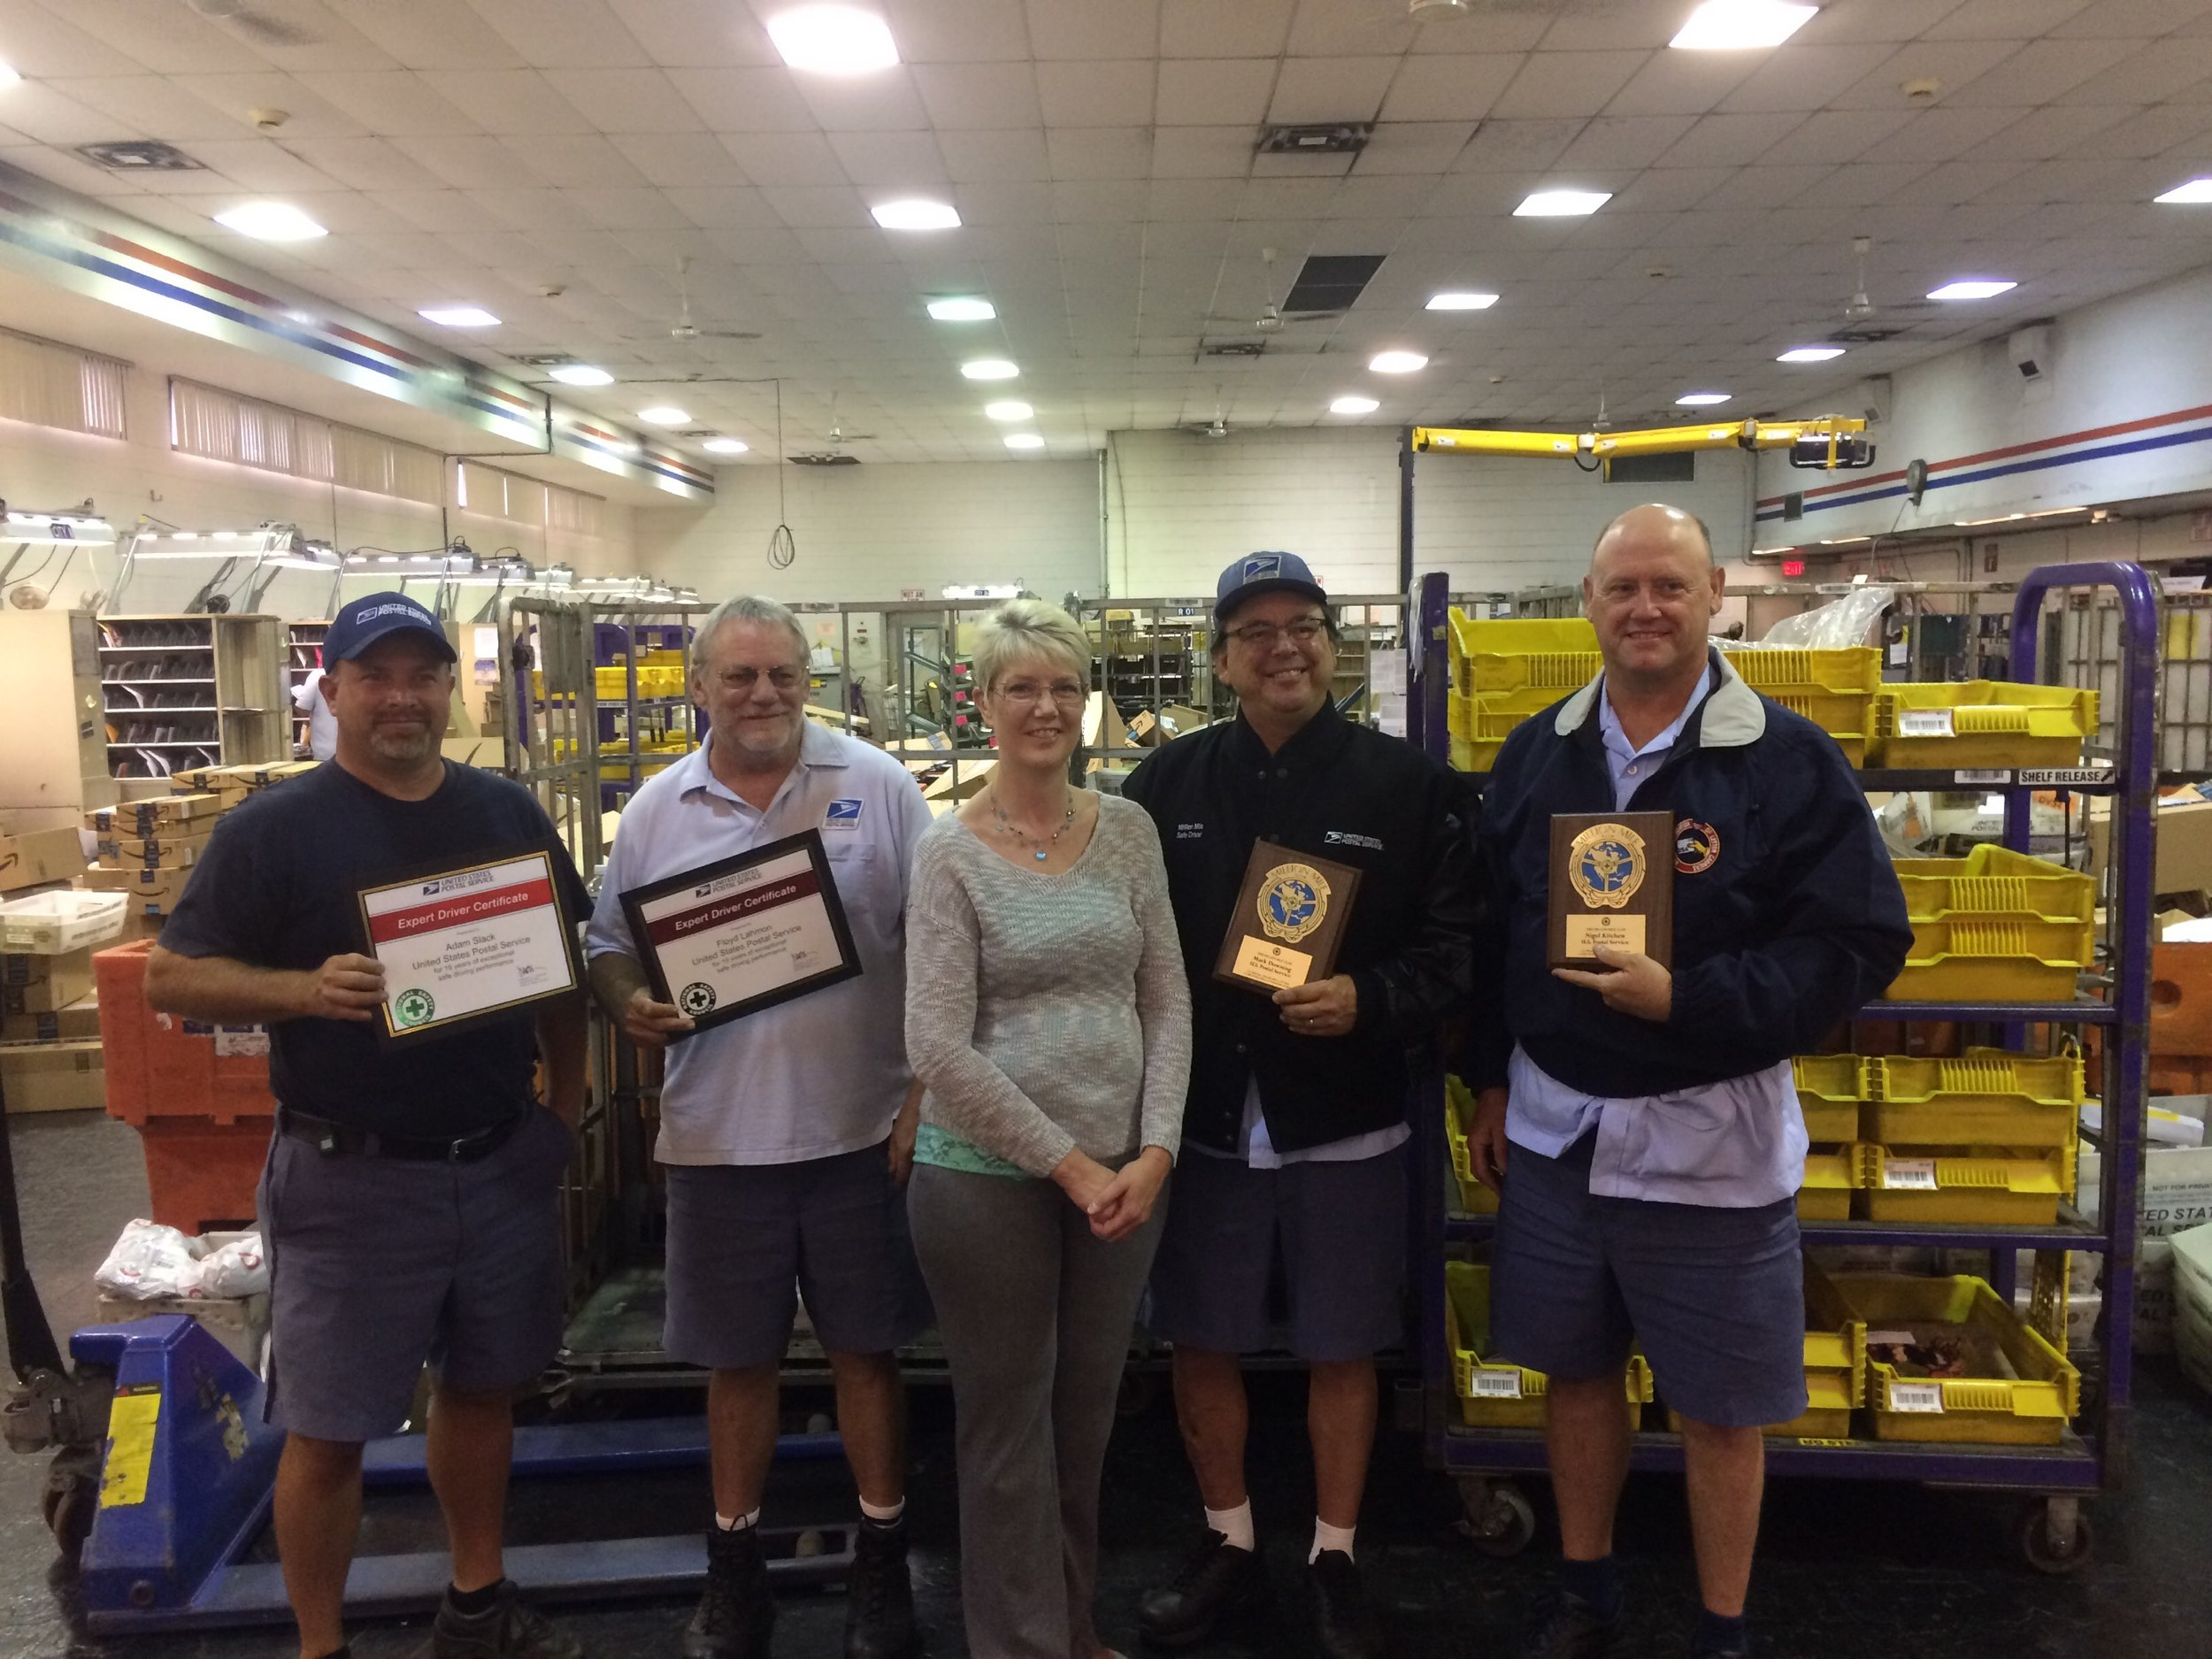 L to R: Adam Slack (18 yr safe driver), Floyd Lahmon (18 yr safe driver) , Melisa Simmons postmaster, Mark Downing & Dave Kitchen million mile award.